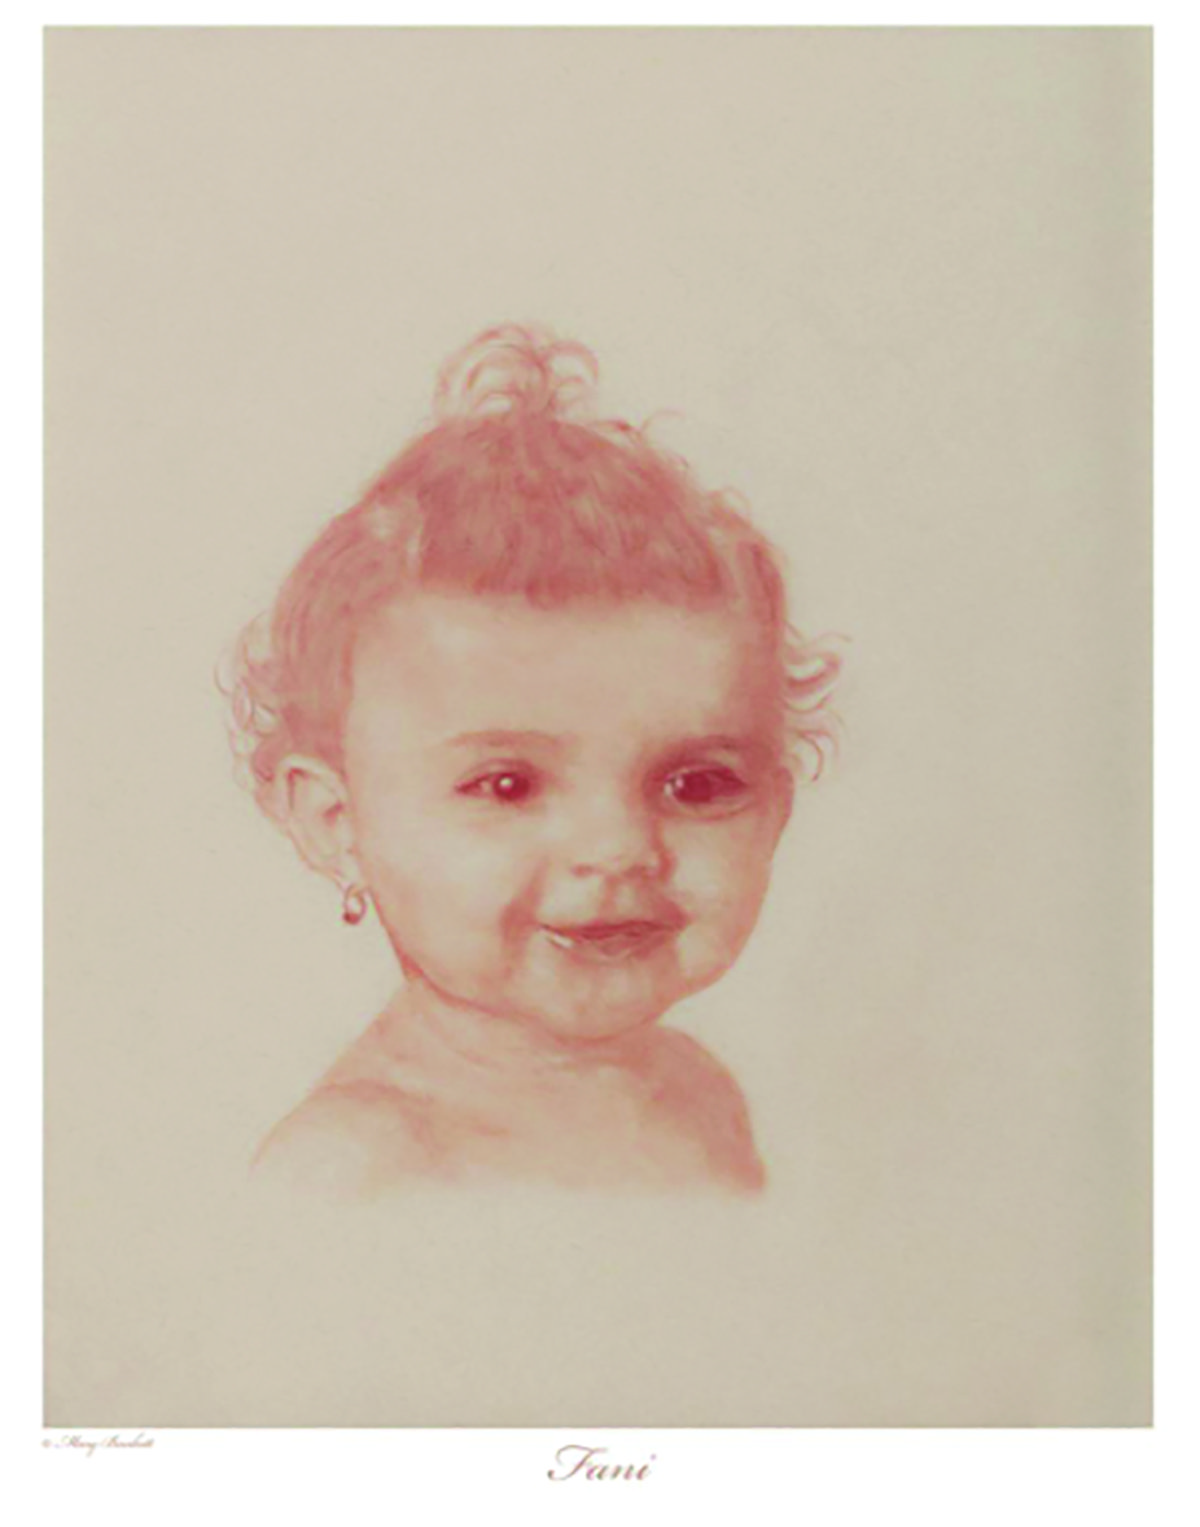 PHOTO PROVIDED  One of 27 drawings of children who were victims of the Holocaust is seen. The artist, Mary Burkett, will give a talk on the exhibition at the Temple Sinai Jewish History Center at 6 p.m. Thurrsday. Admission is free, and Thursday also marks the final day of the exhibition.